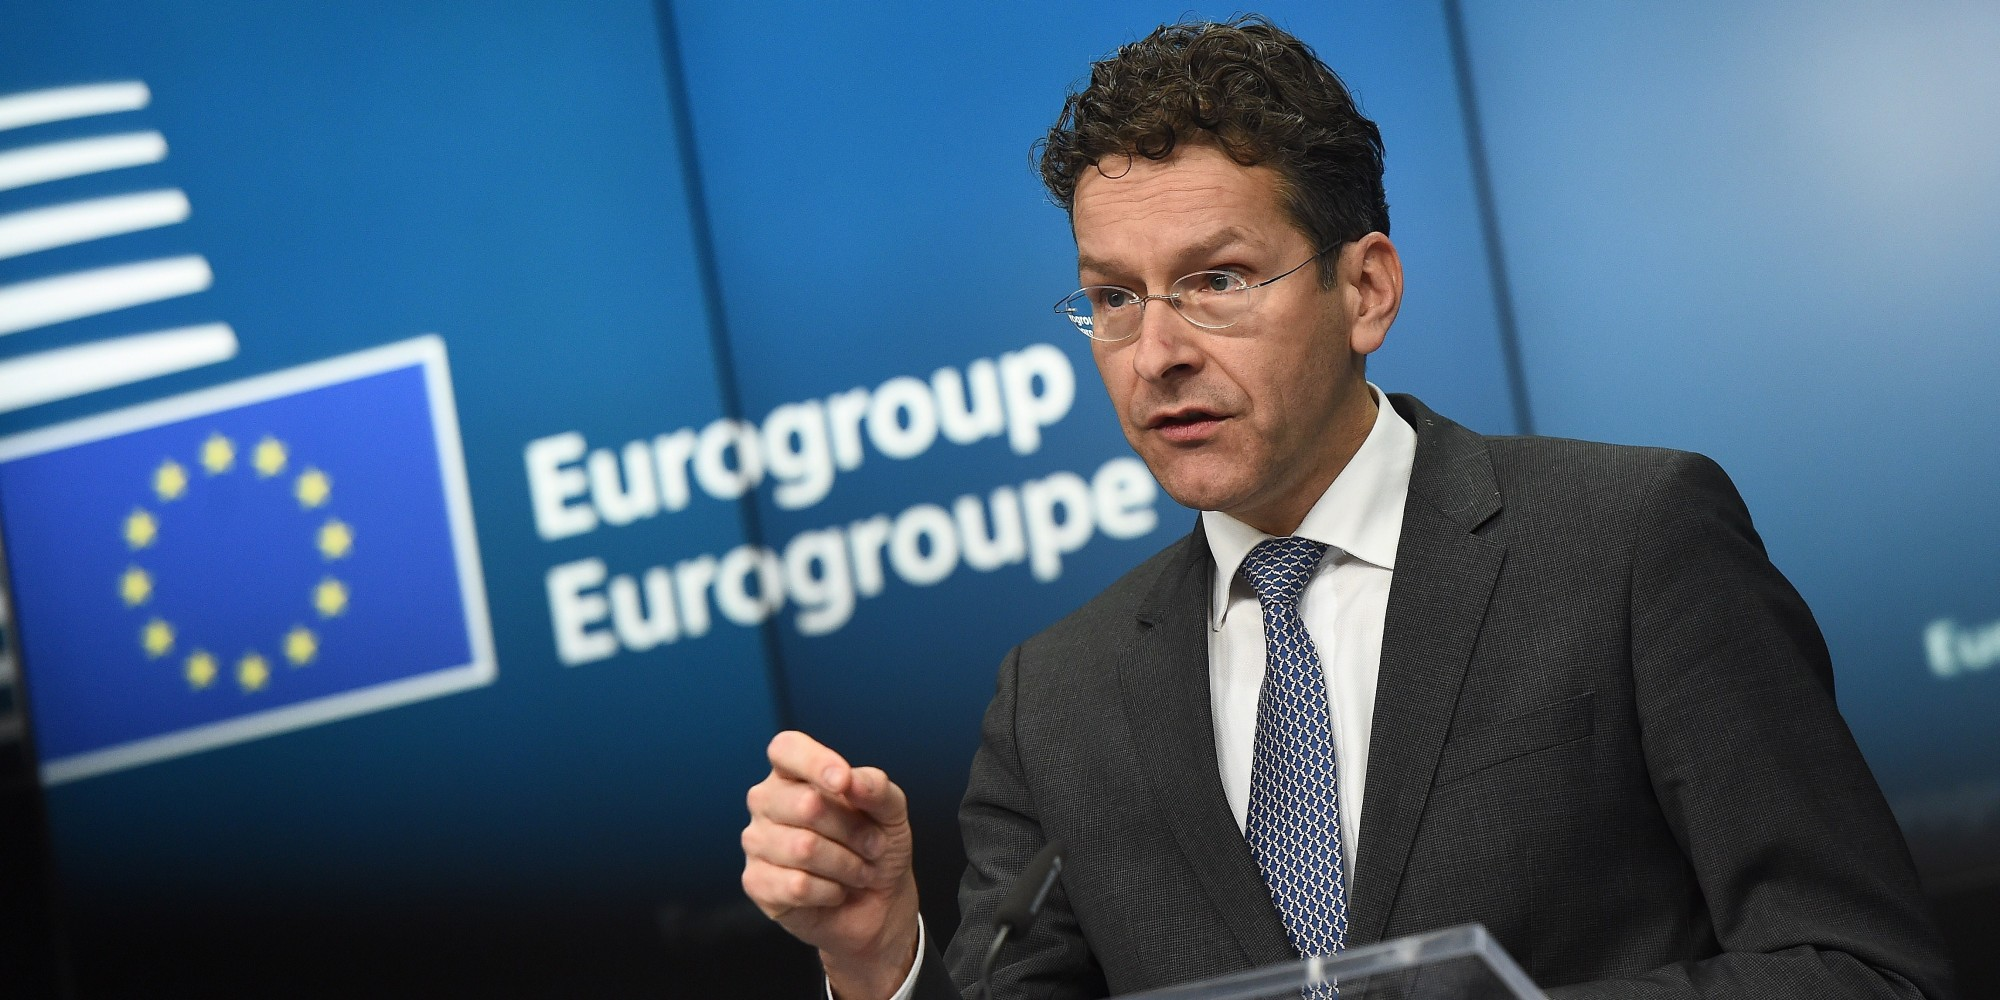 BELGIUM-EU-FINANCE-EUROGROUP